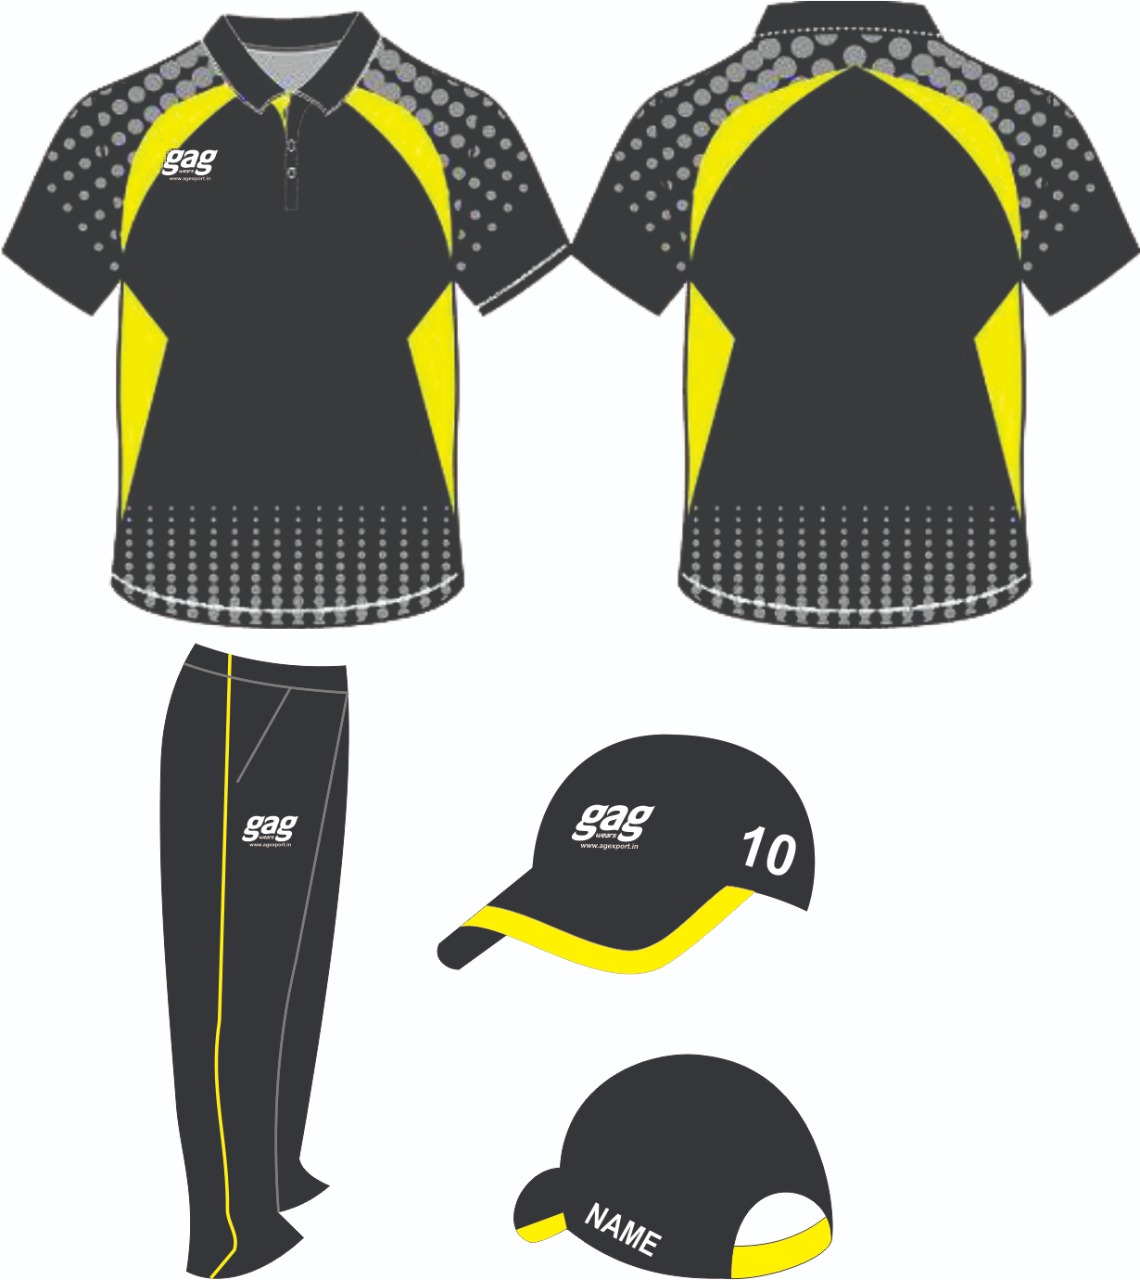 Cricket Uniform Manufacturers and Exporters in Sambalpur